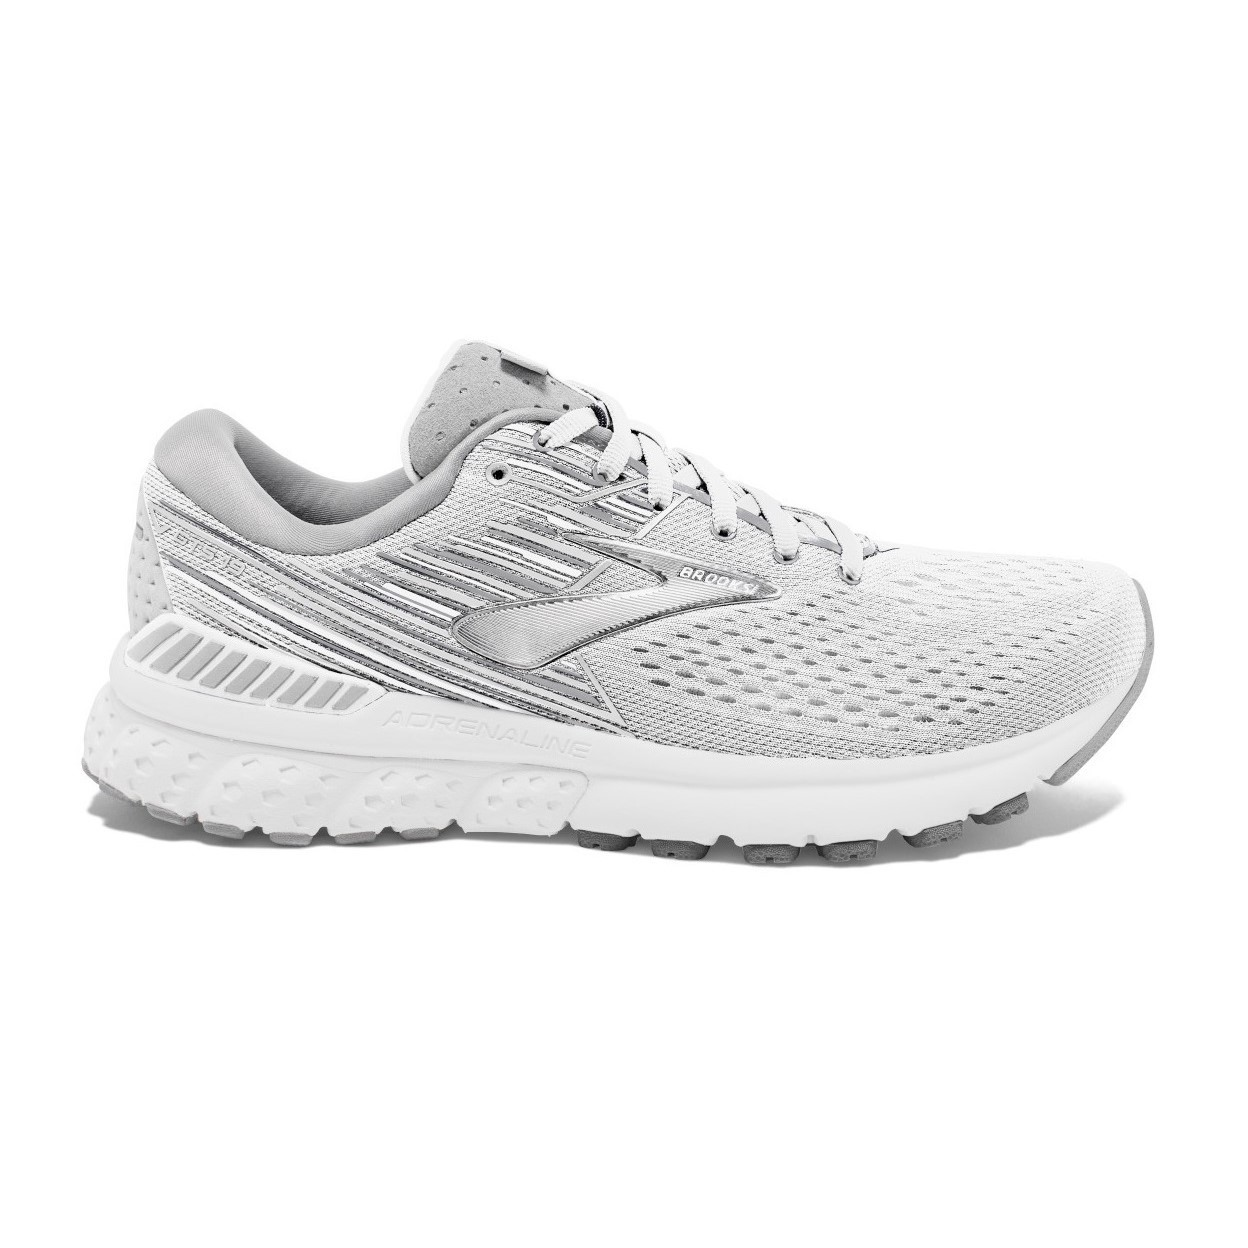 e4484fd2673 Brooks Adrenaline GTS 19 - Womens Running Shoes - White Grey ...